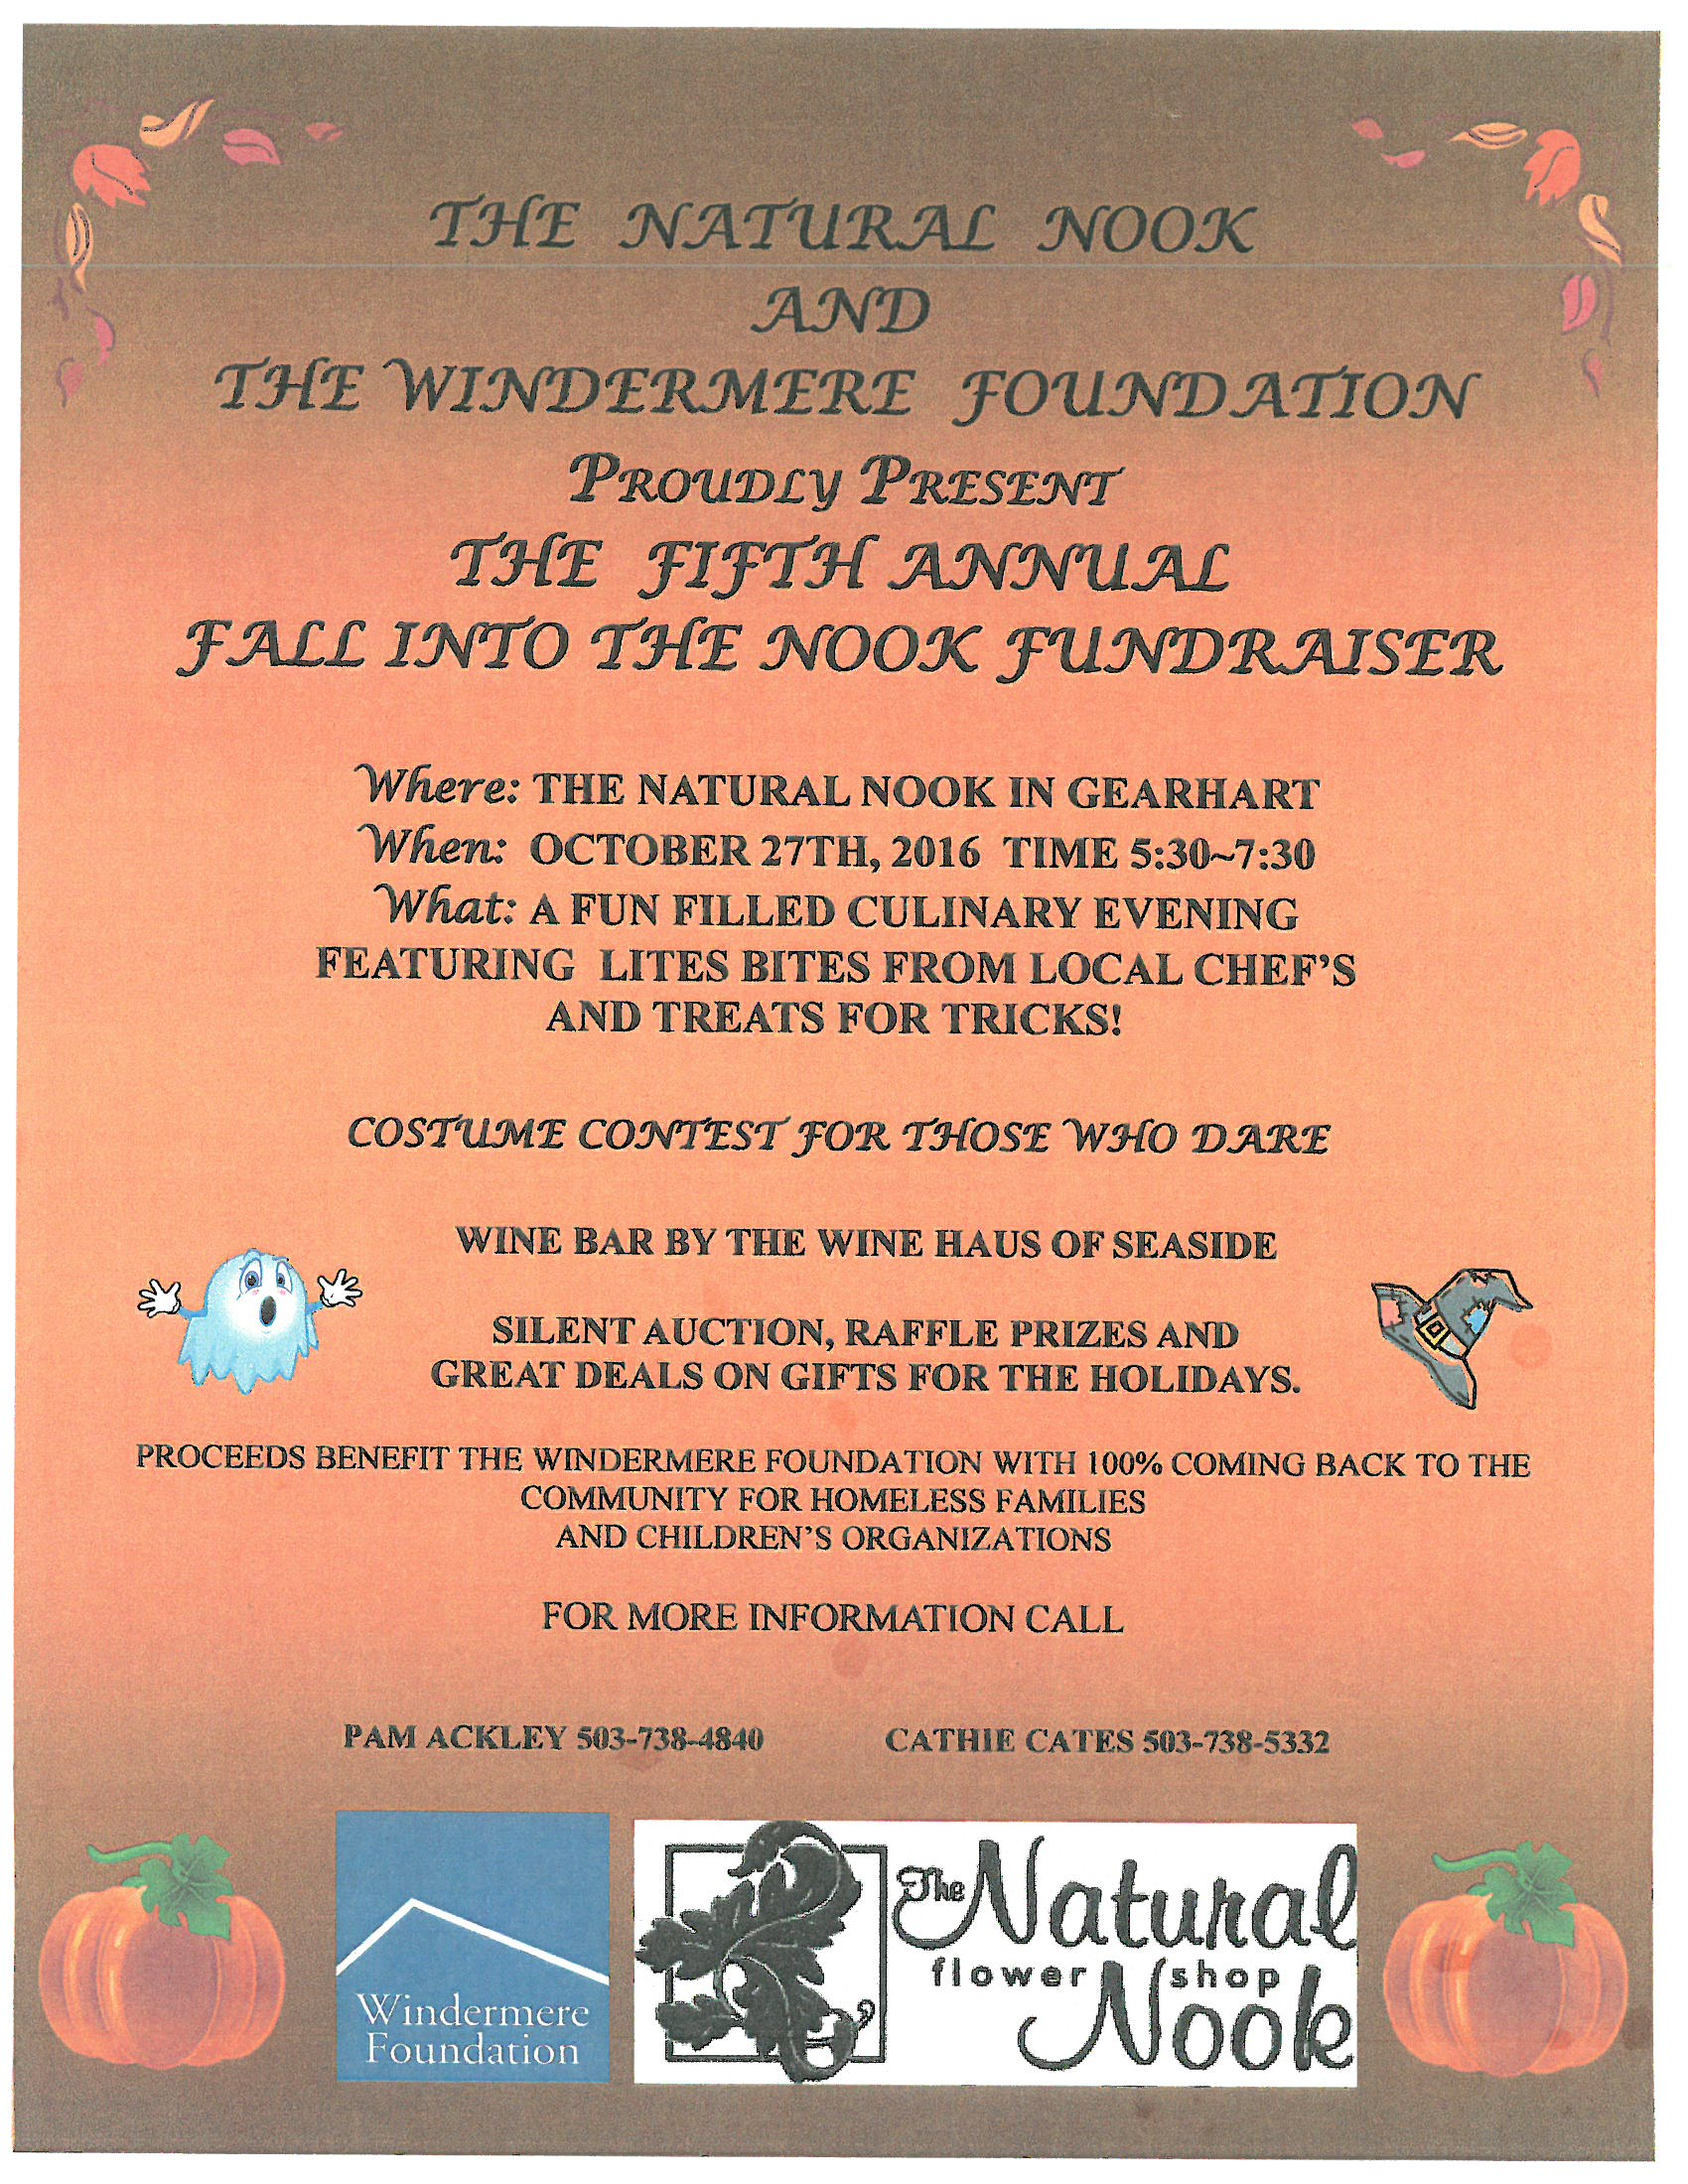 Fall into the Nook Fundraiser FLYER